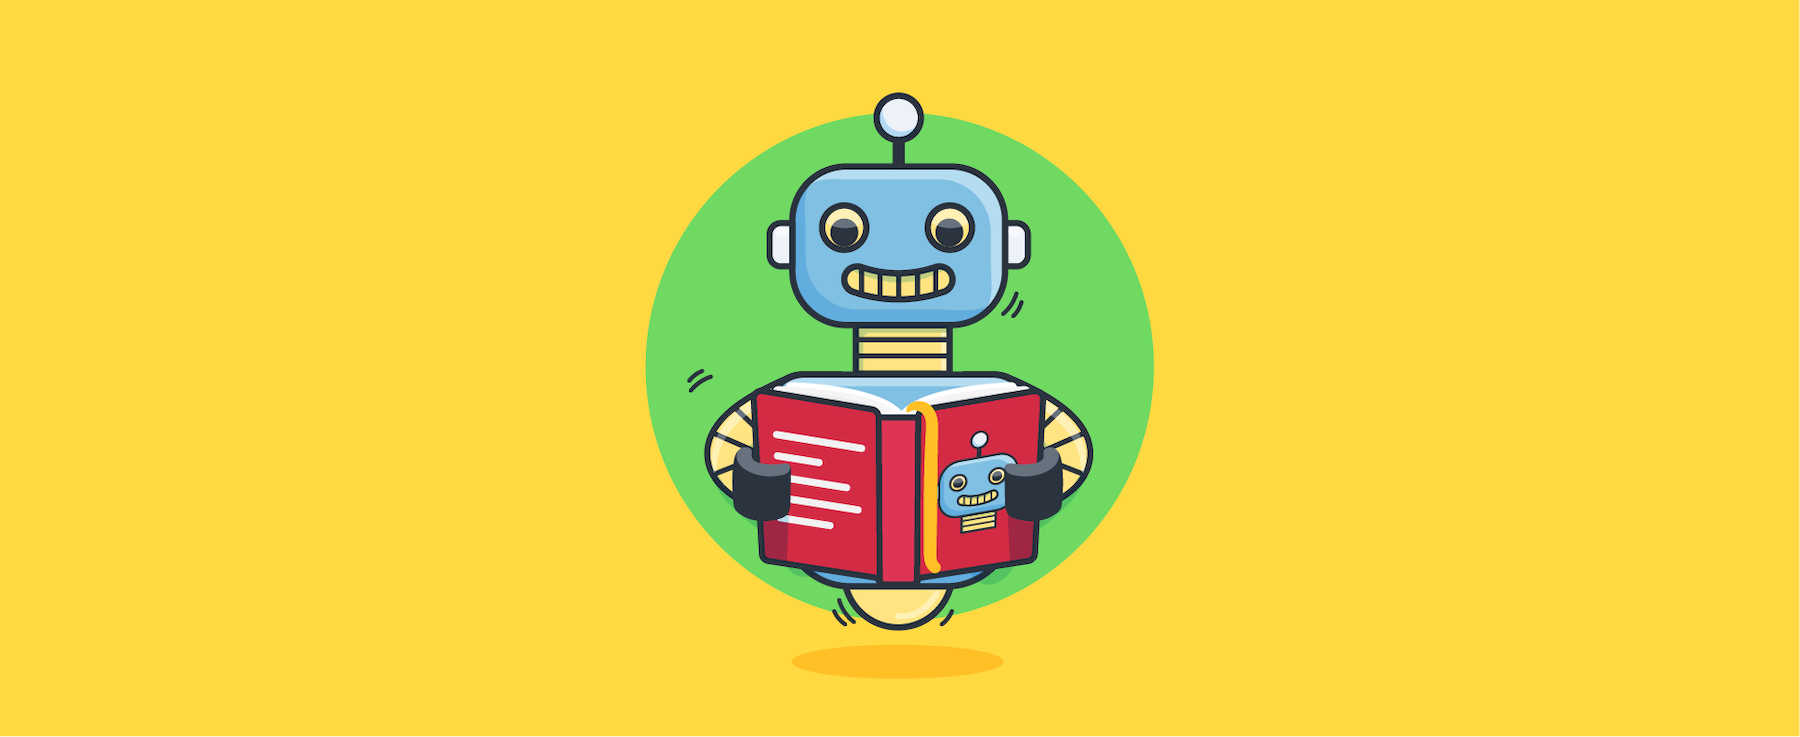 Chatbot reading a book about chatbots.